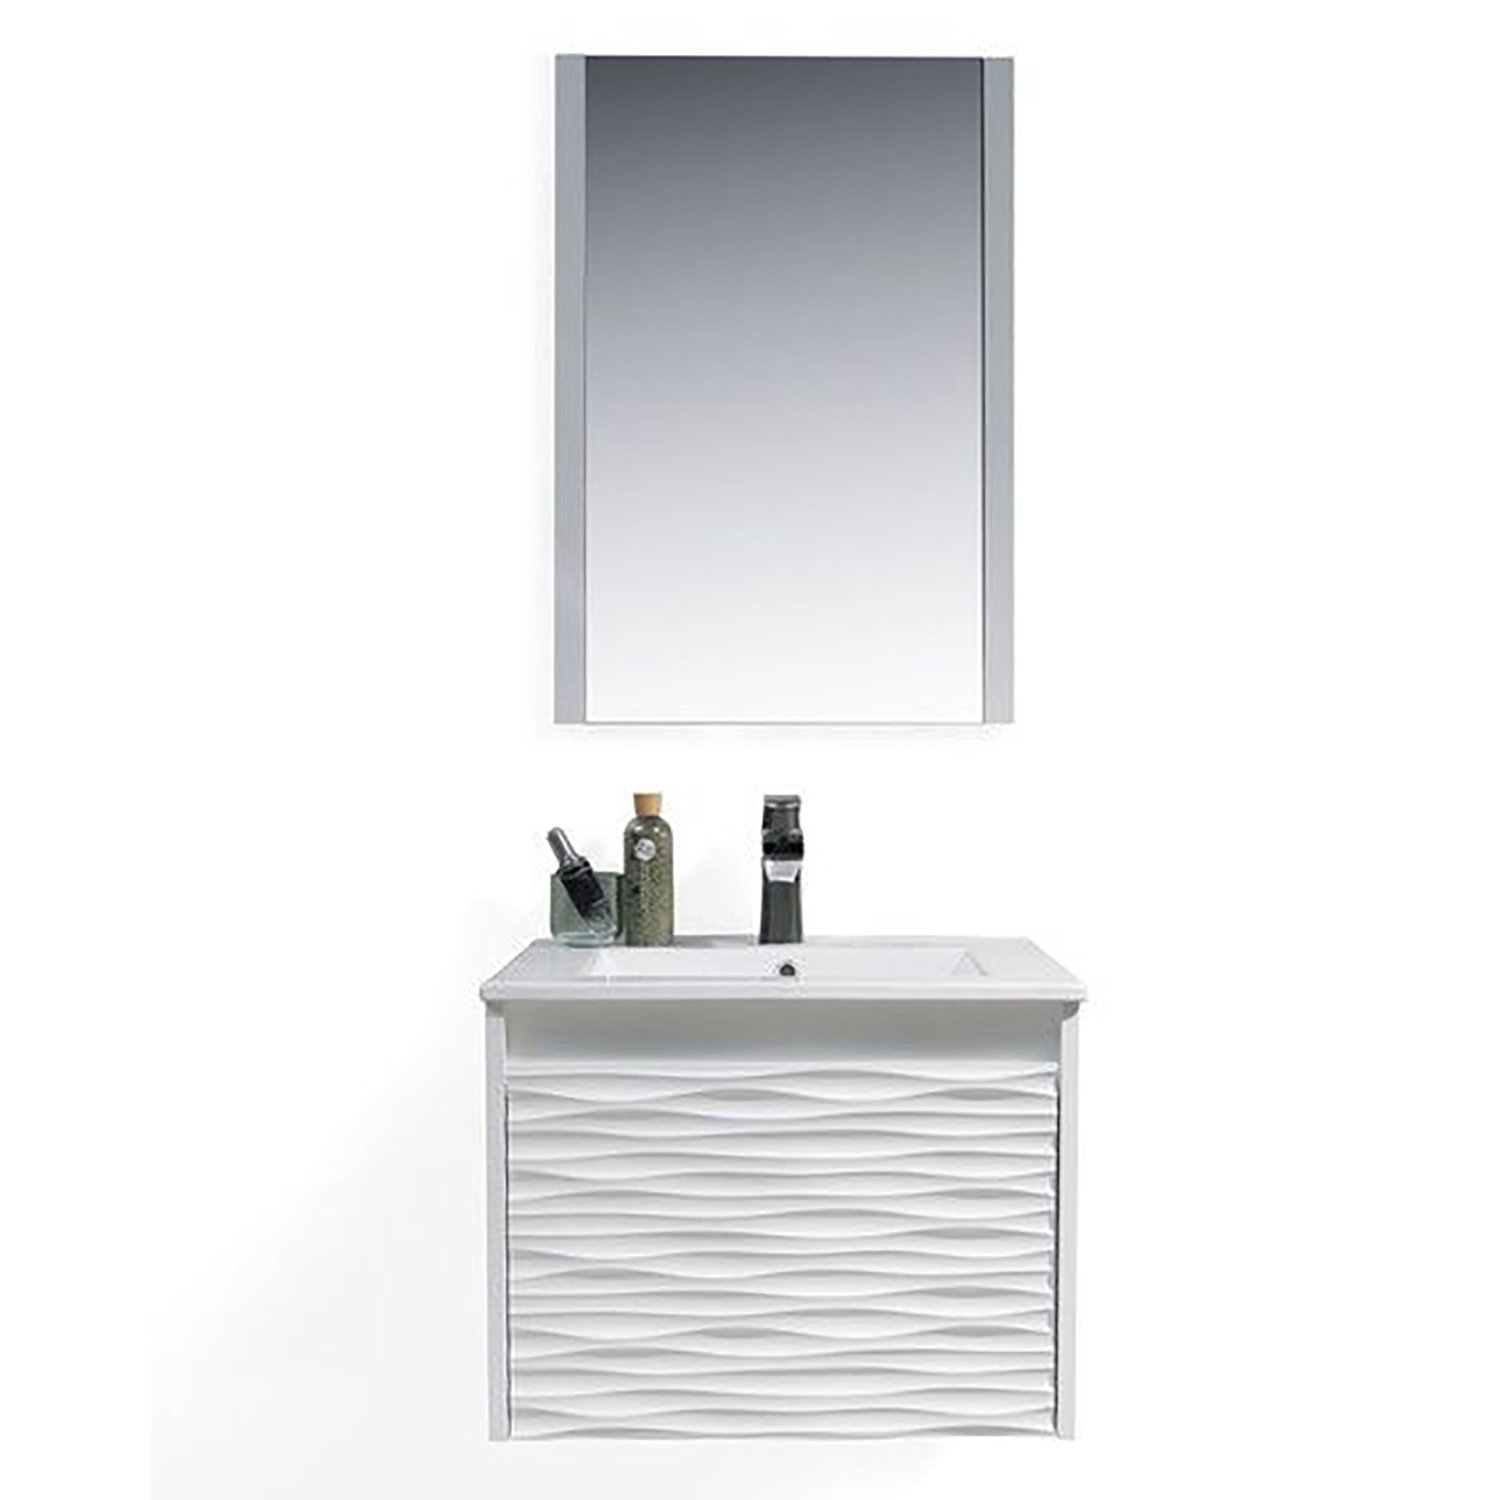 BLOSSOM 008-24-01-NC Paris 24'' Vanity Set with Acrylic Top-Mount Basin & Mirror Glossy White